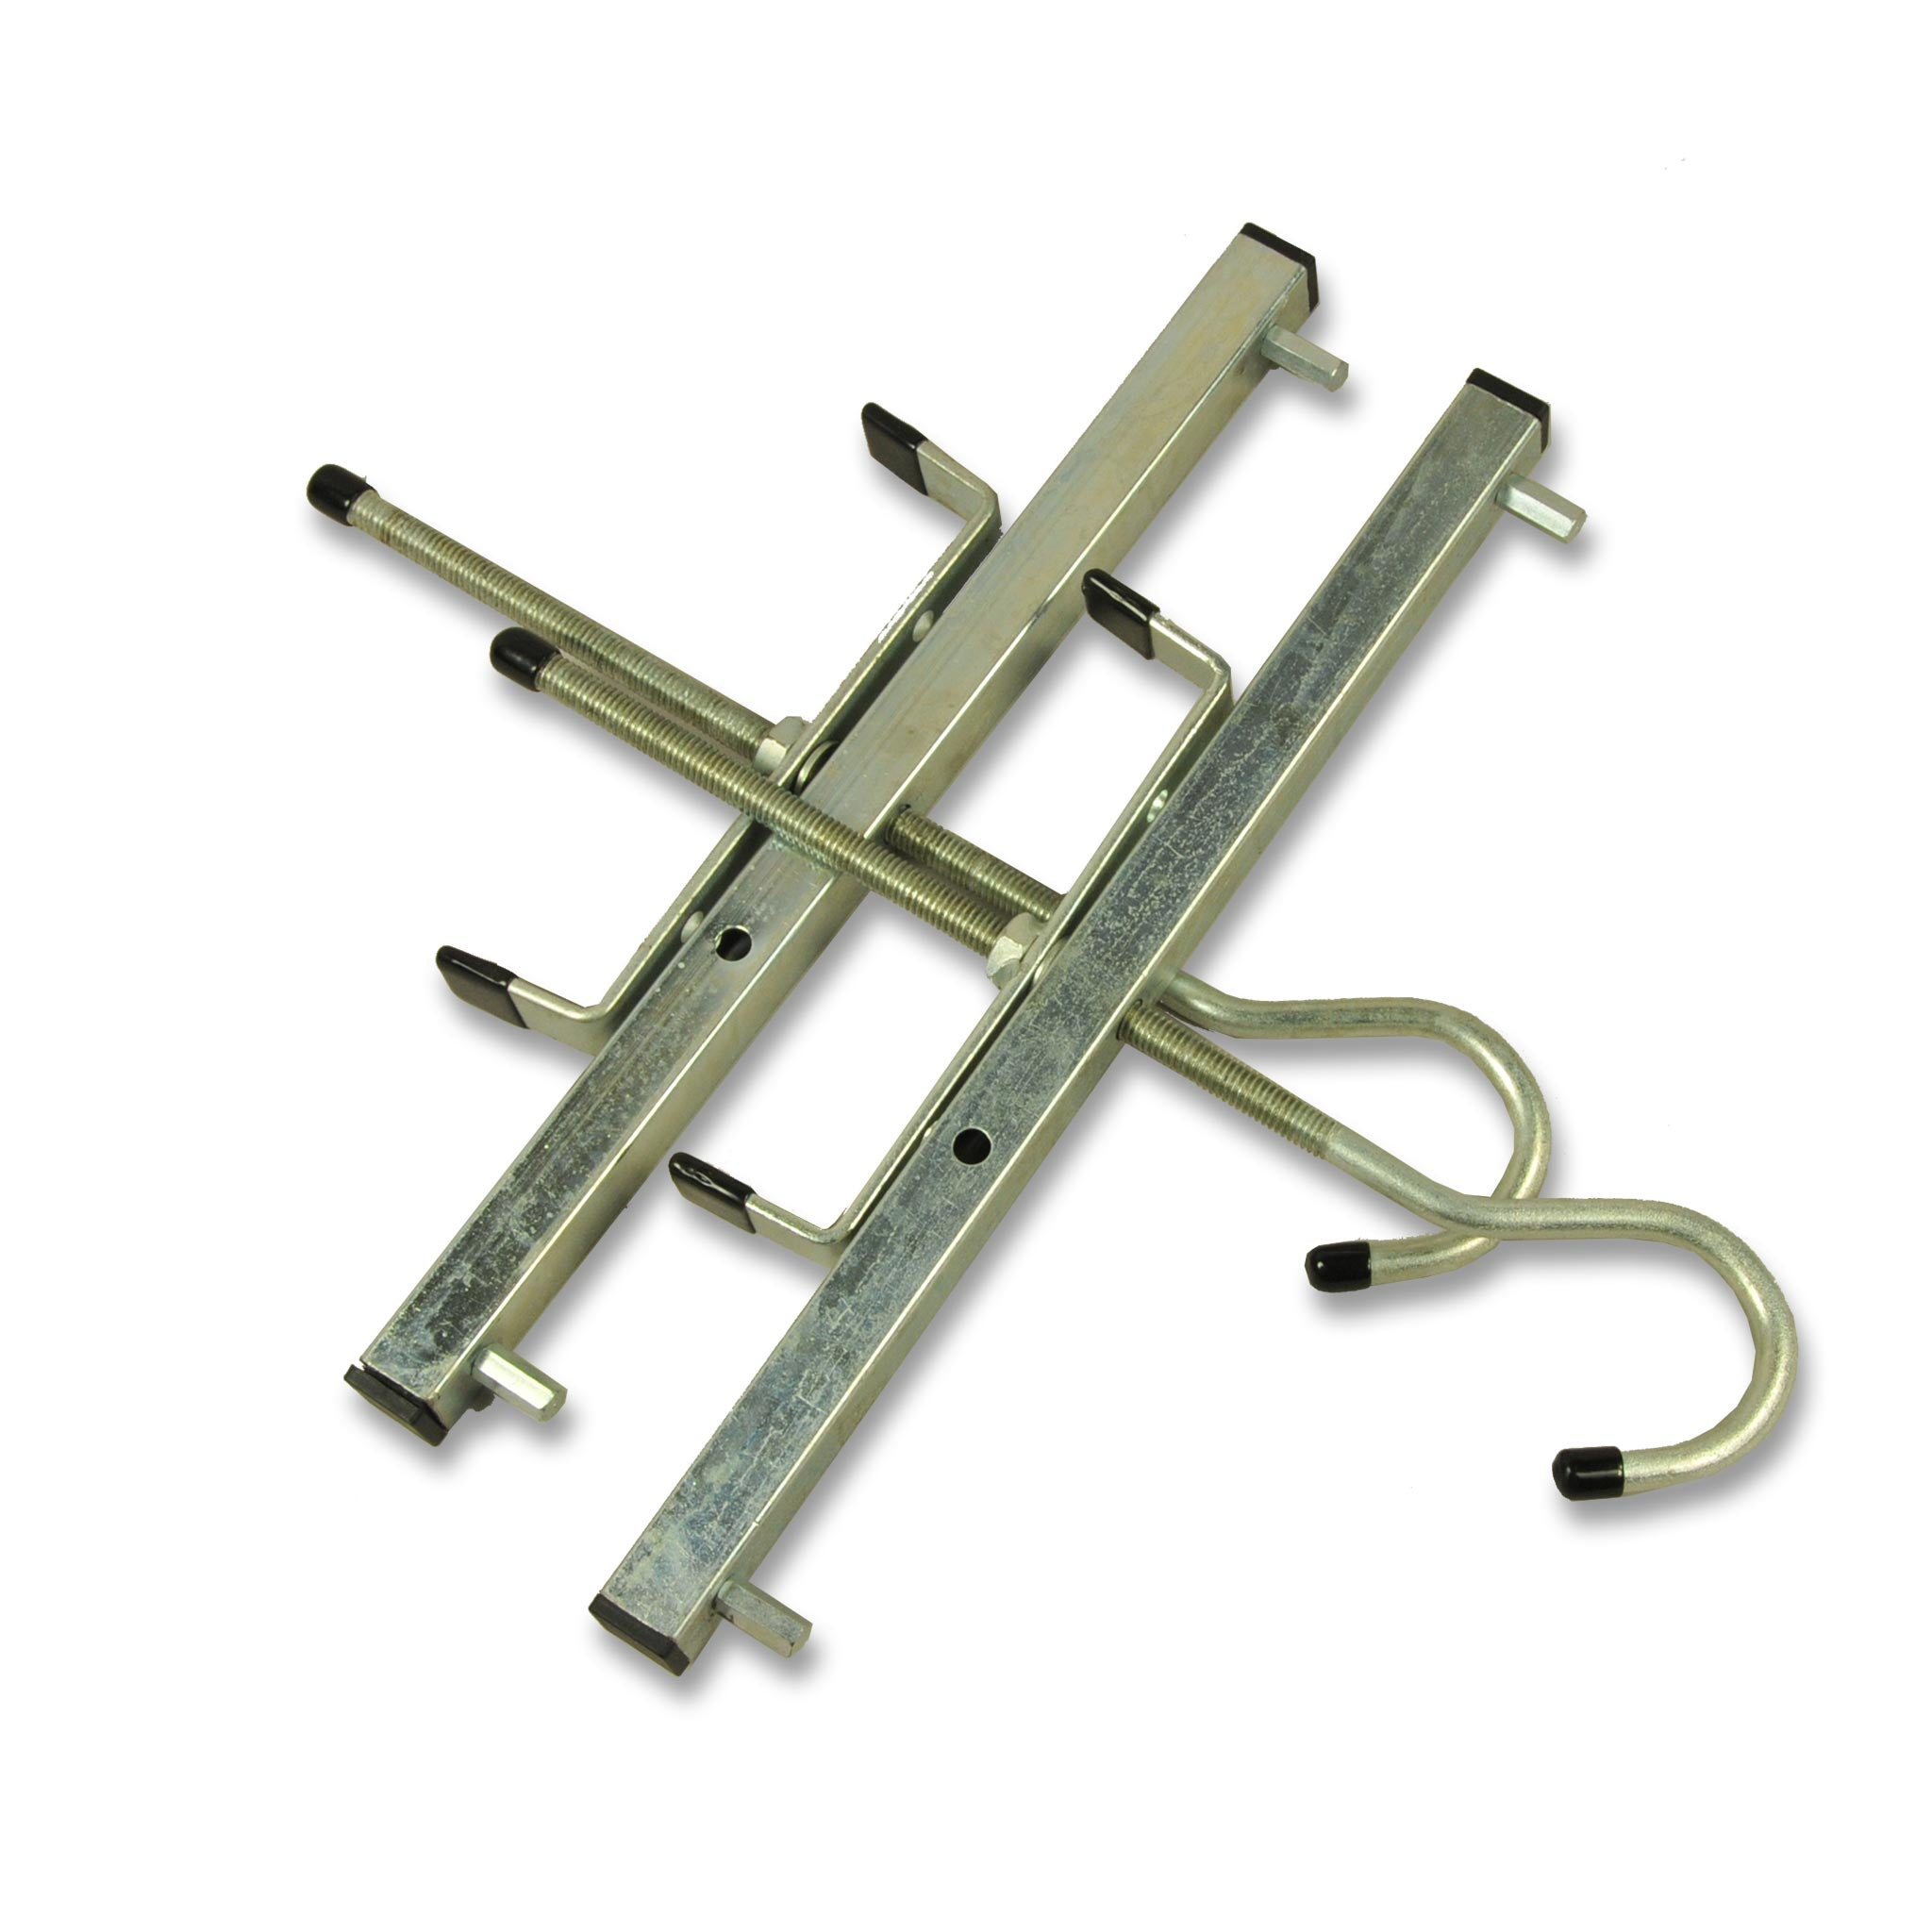 Racktite - Ladder Clamps